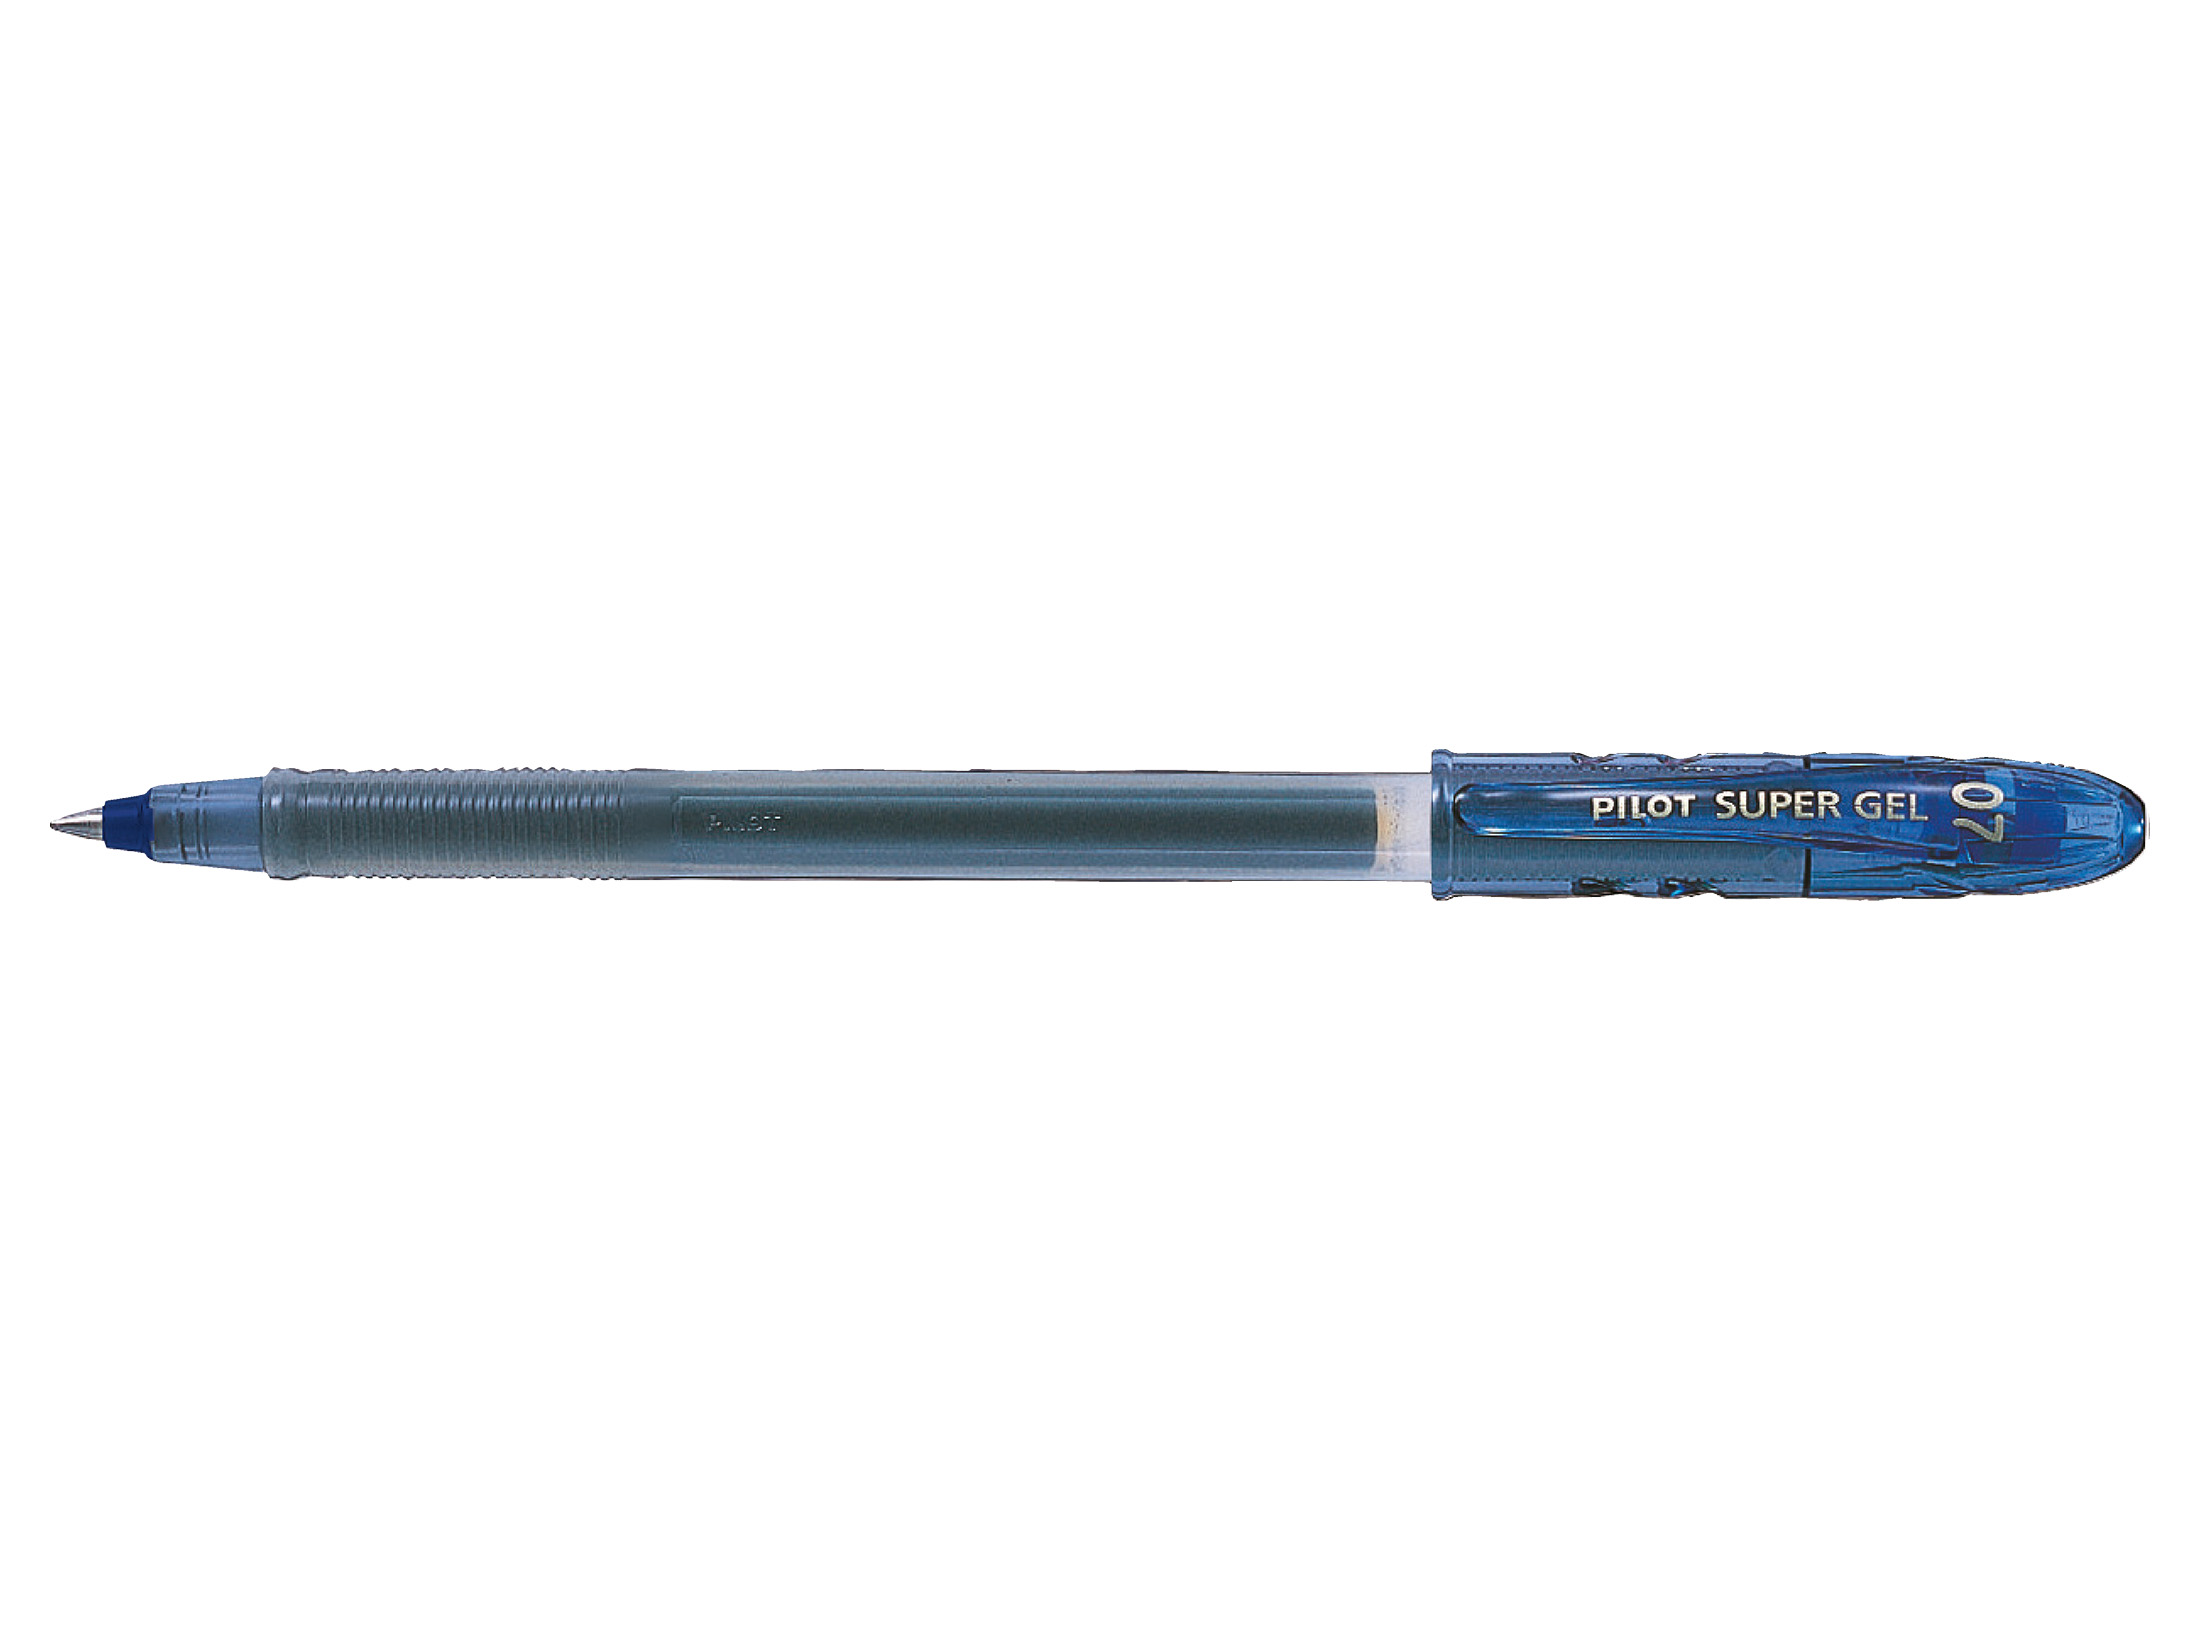 Pilot BegreeN Supergel Rollerball Pen Gel 0.7 Tip 0.39mm Line Blue Ref LS8FLBG [Pack 10]